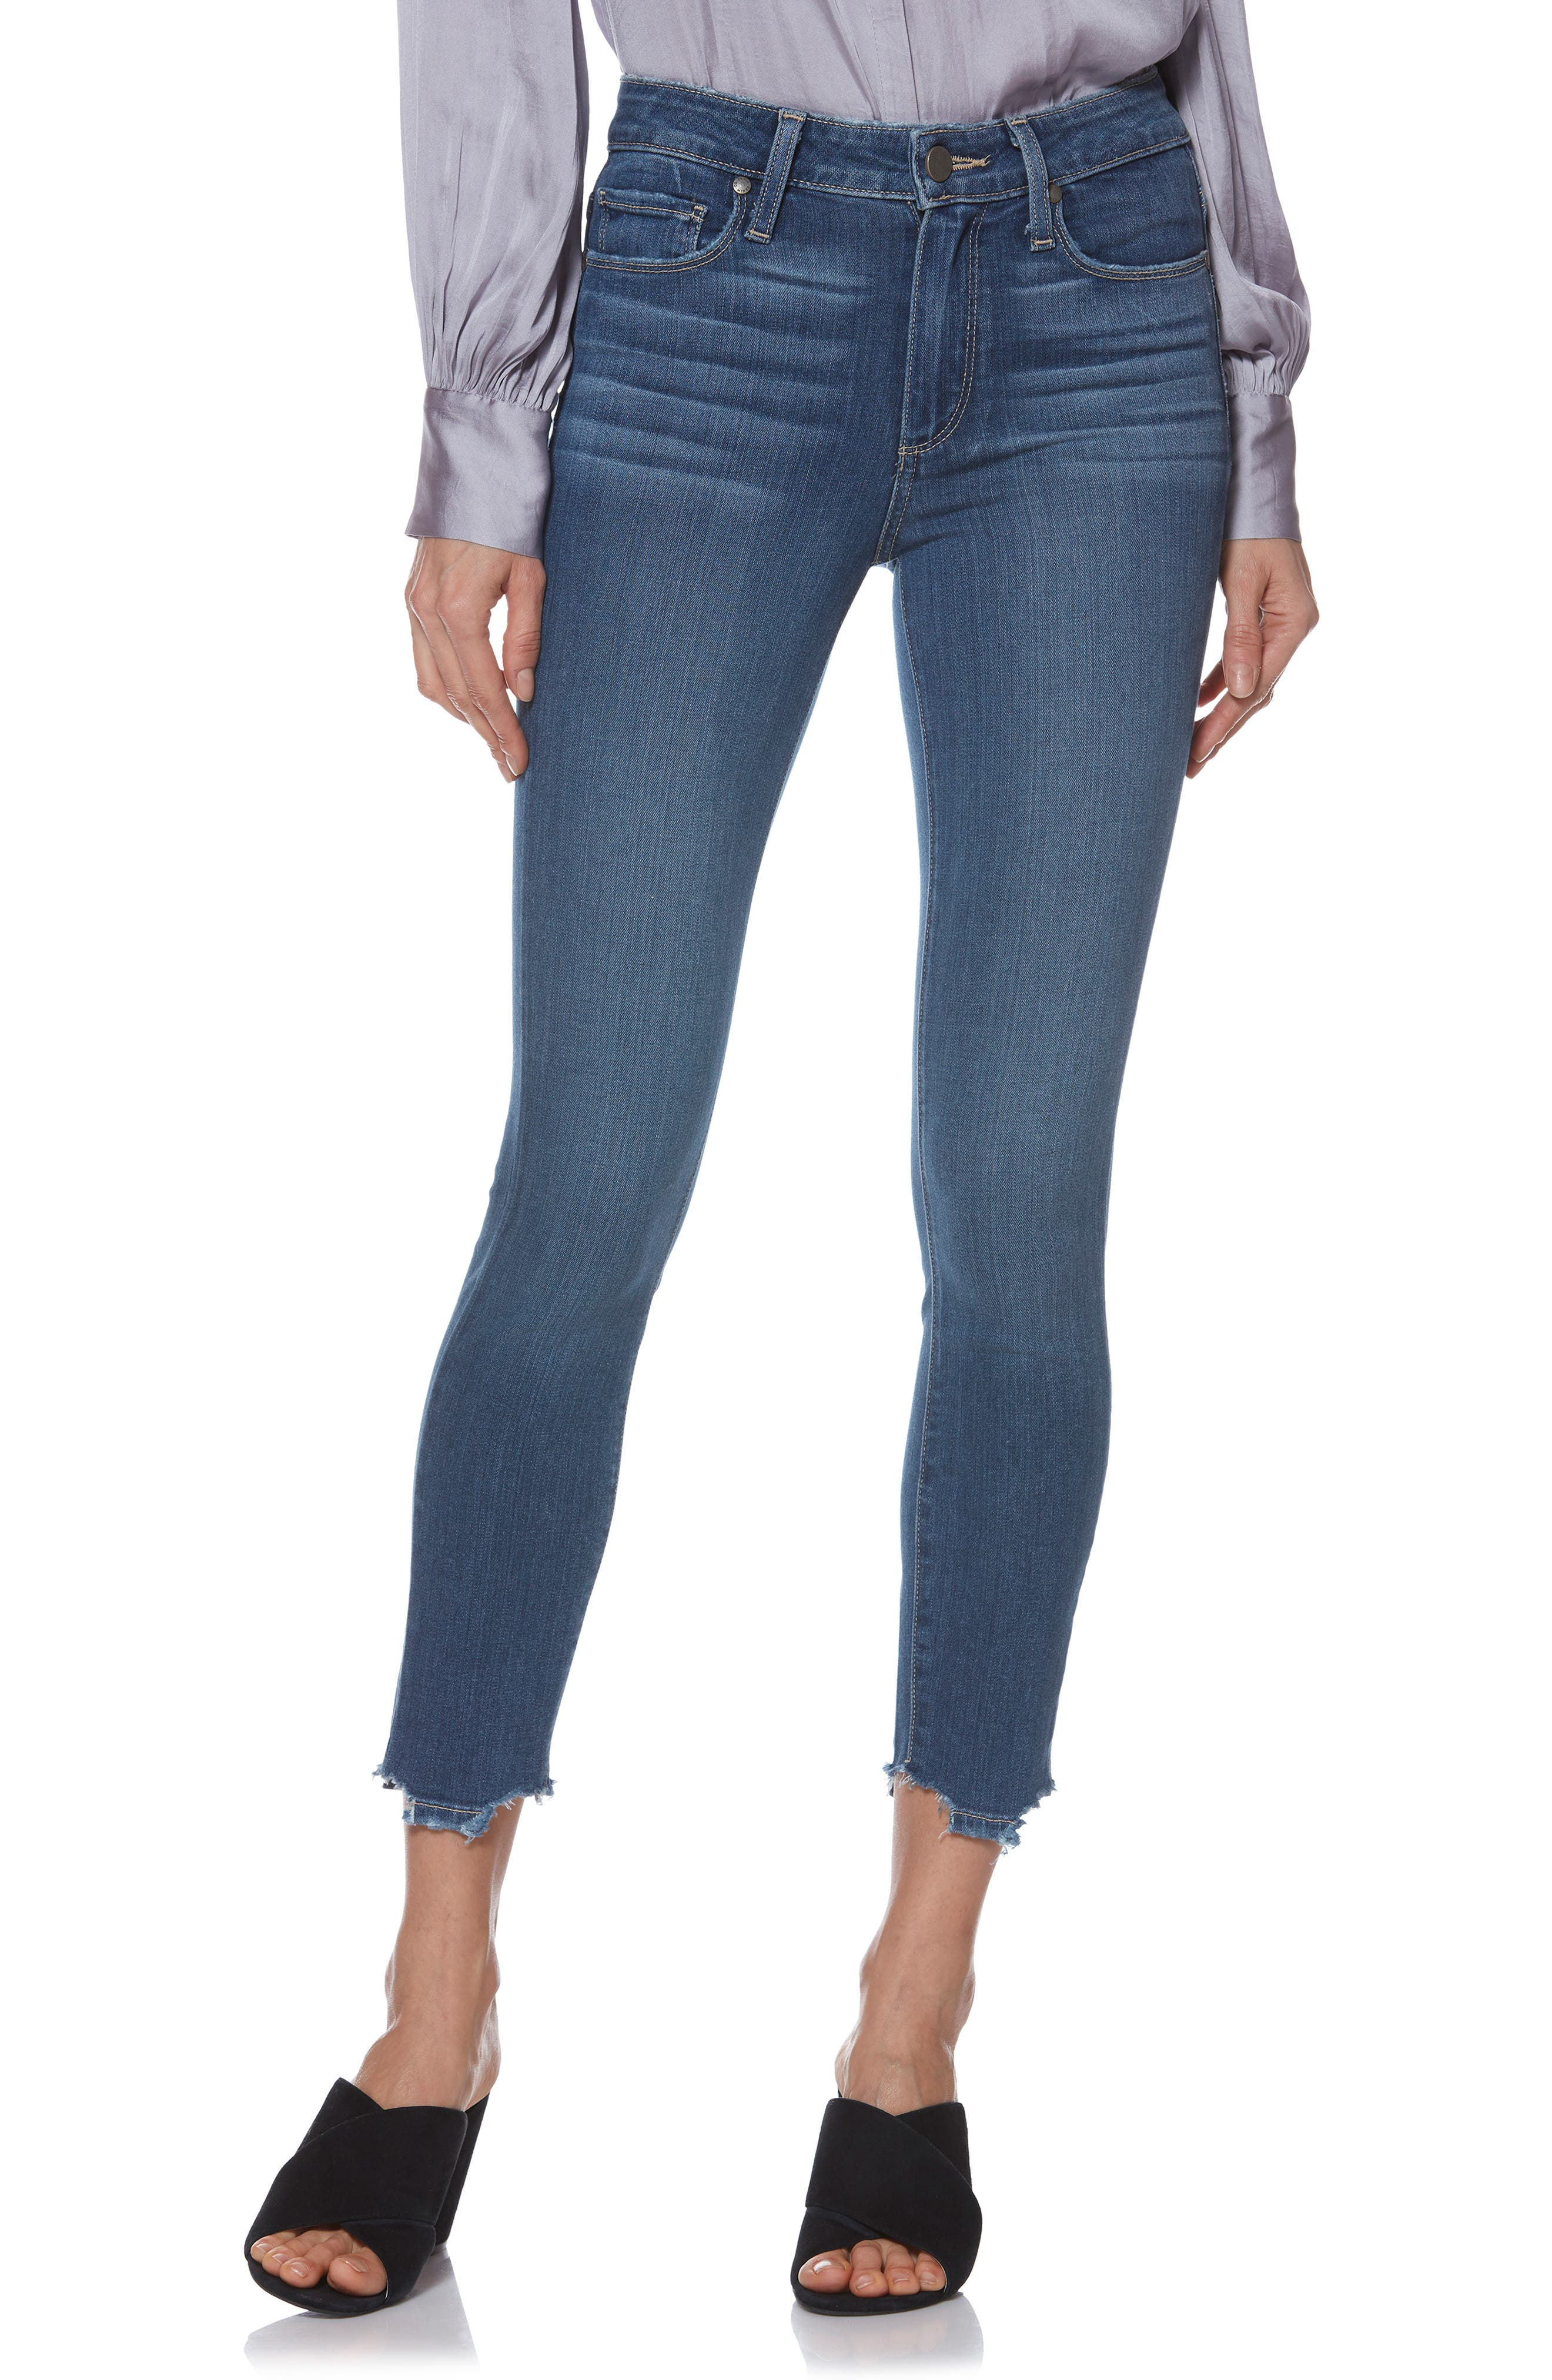 Transcend - Hoxton High Waist Crop Skinny Jeans,                             Main thumbnail 1, color,                             400